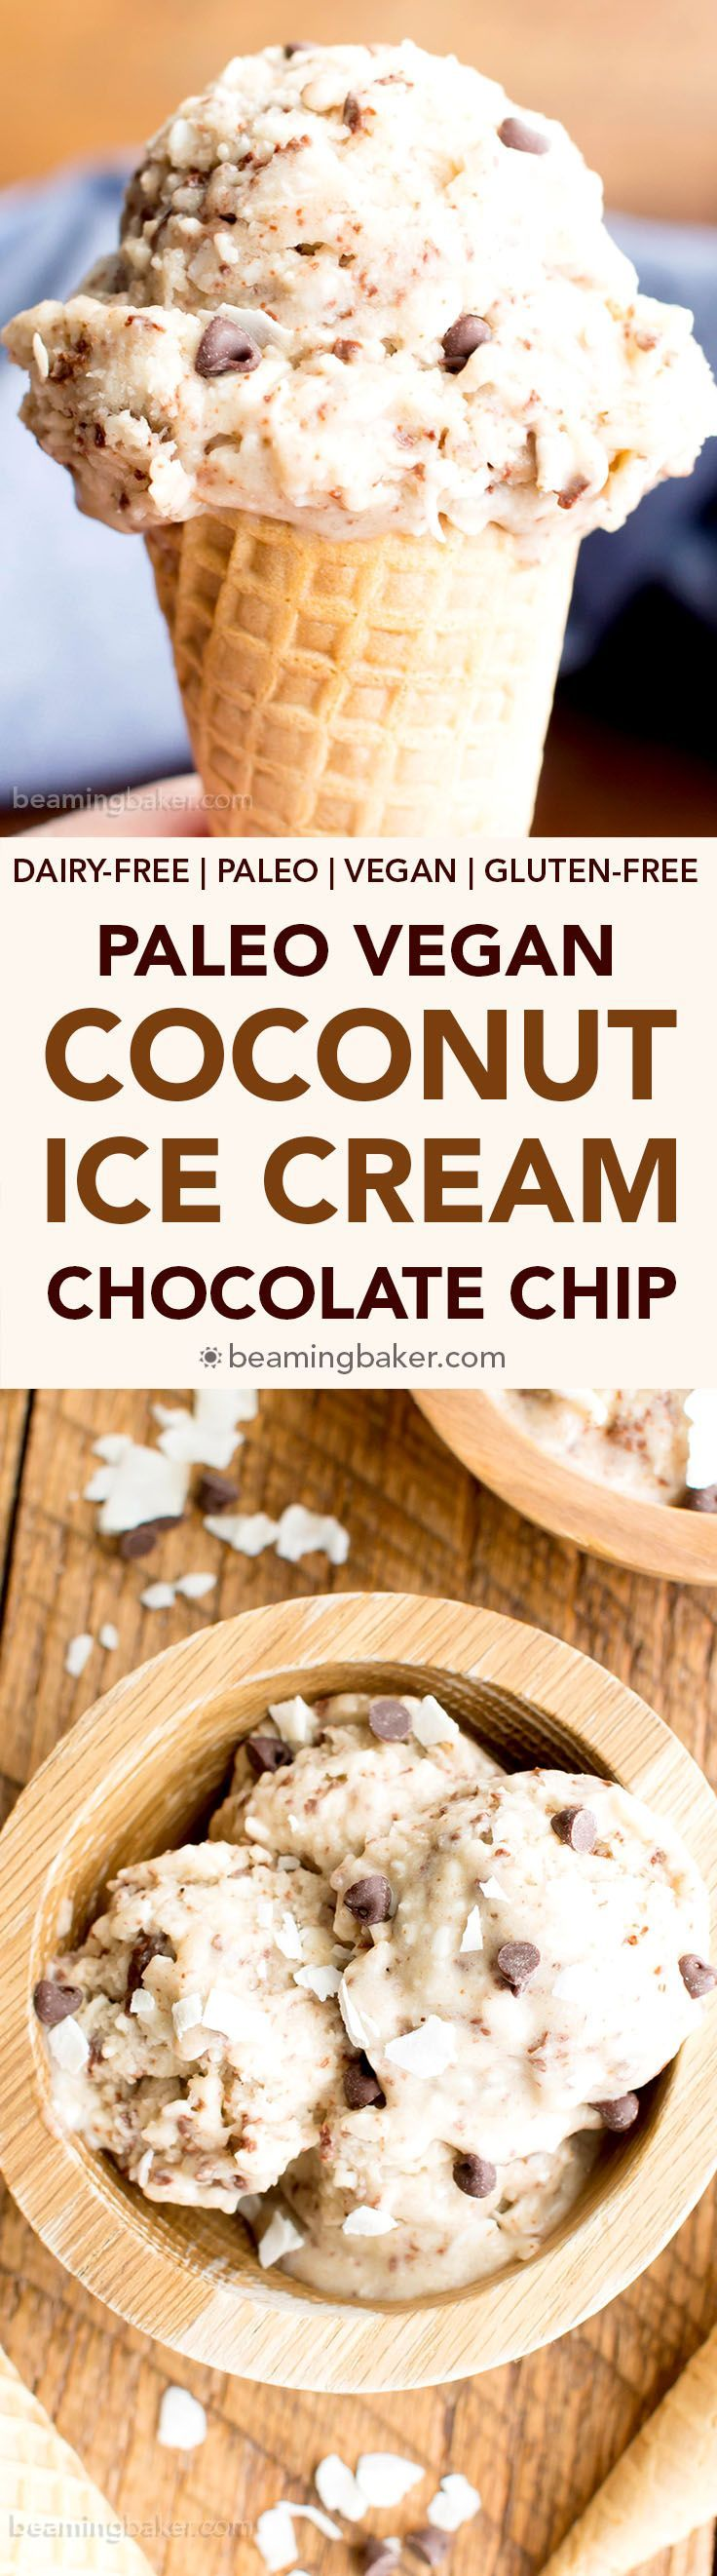 Coconut Chocolate Chip Vegan Ice Cream (Paleo, V, GF): an easy, 6 ingredient recipe for creamy chocolate chip ice cream bursting with coconut flavor. #Vegan #Paleo #GlutenFree #DairyFree BeamingBaker.com